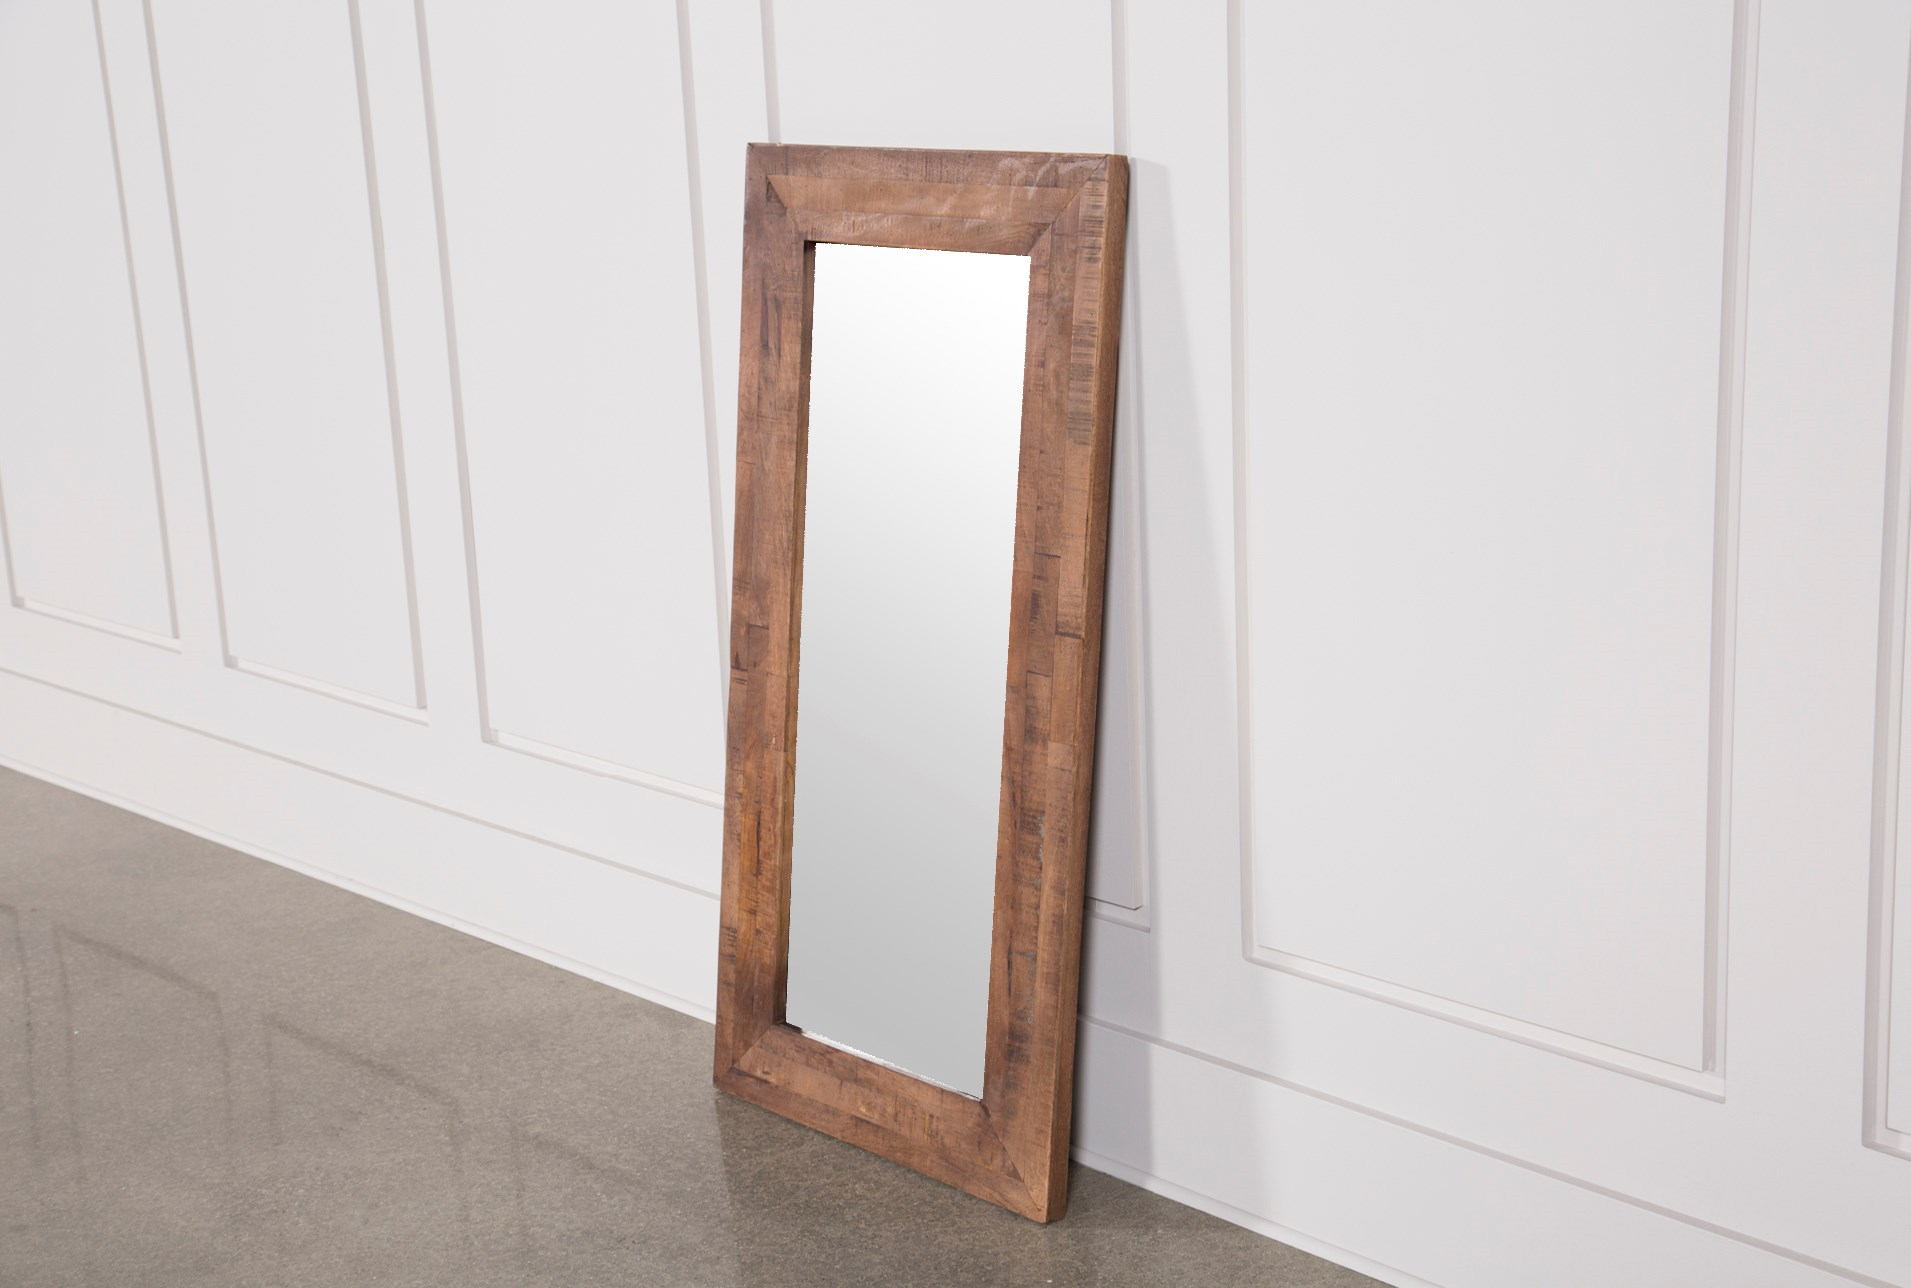 Mango Wood Mirror Frame Qty 1 Has Been Successfully Added To Your Cart